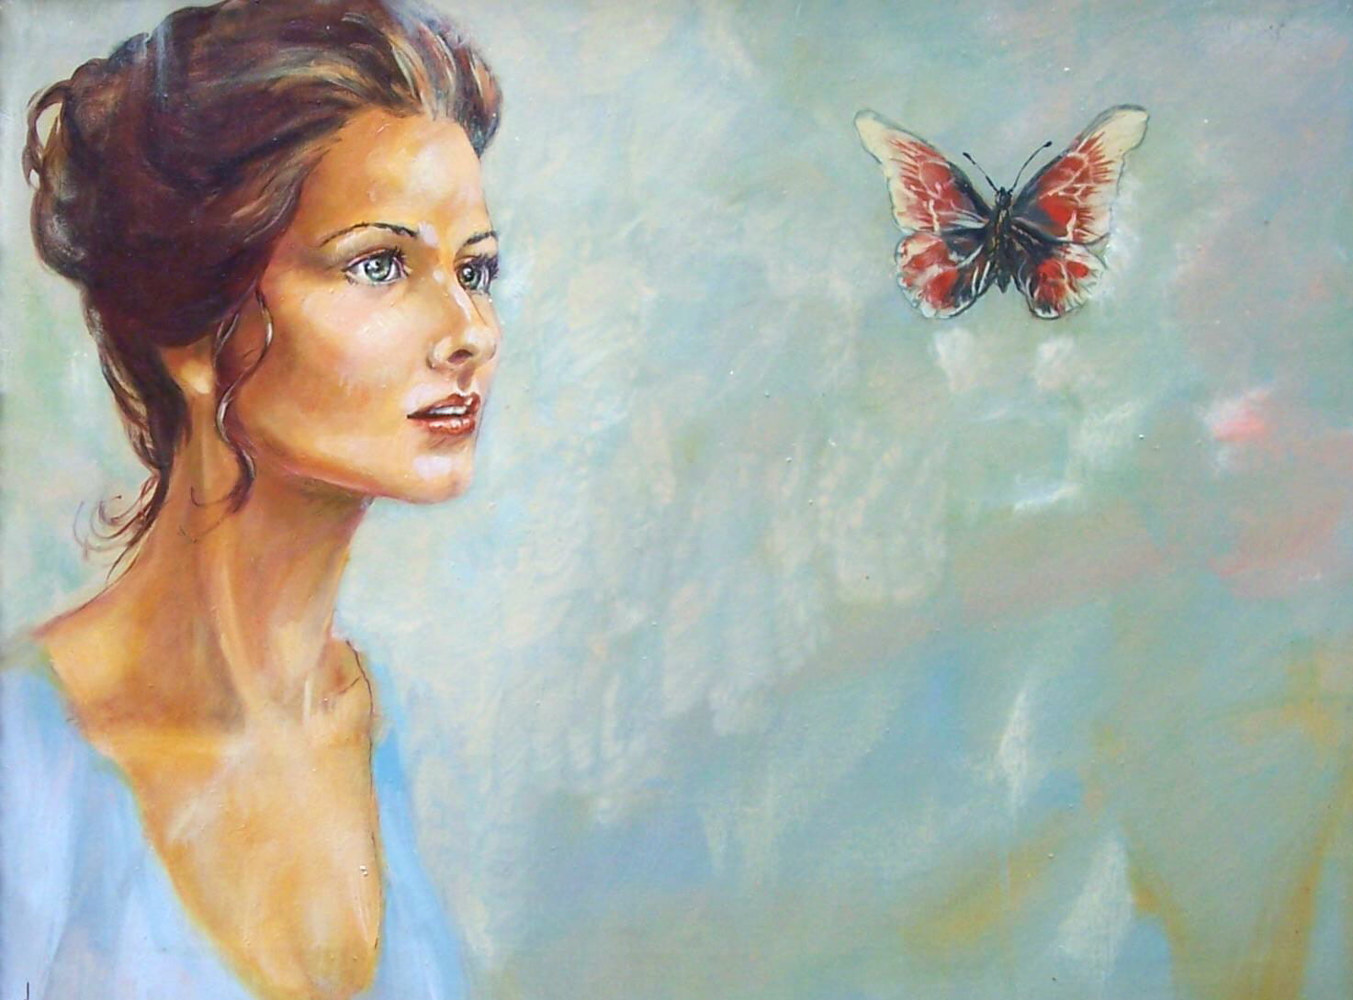 Butterfly Girl24x30 - oil by Don Moore